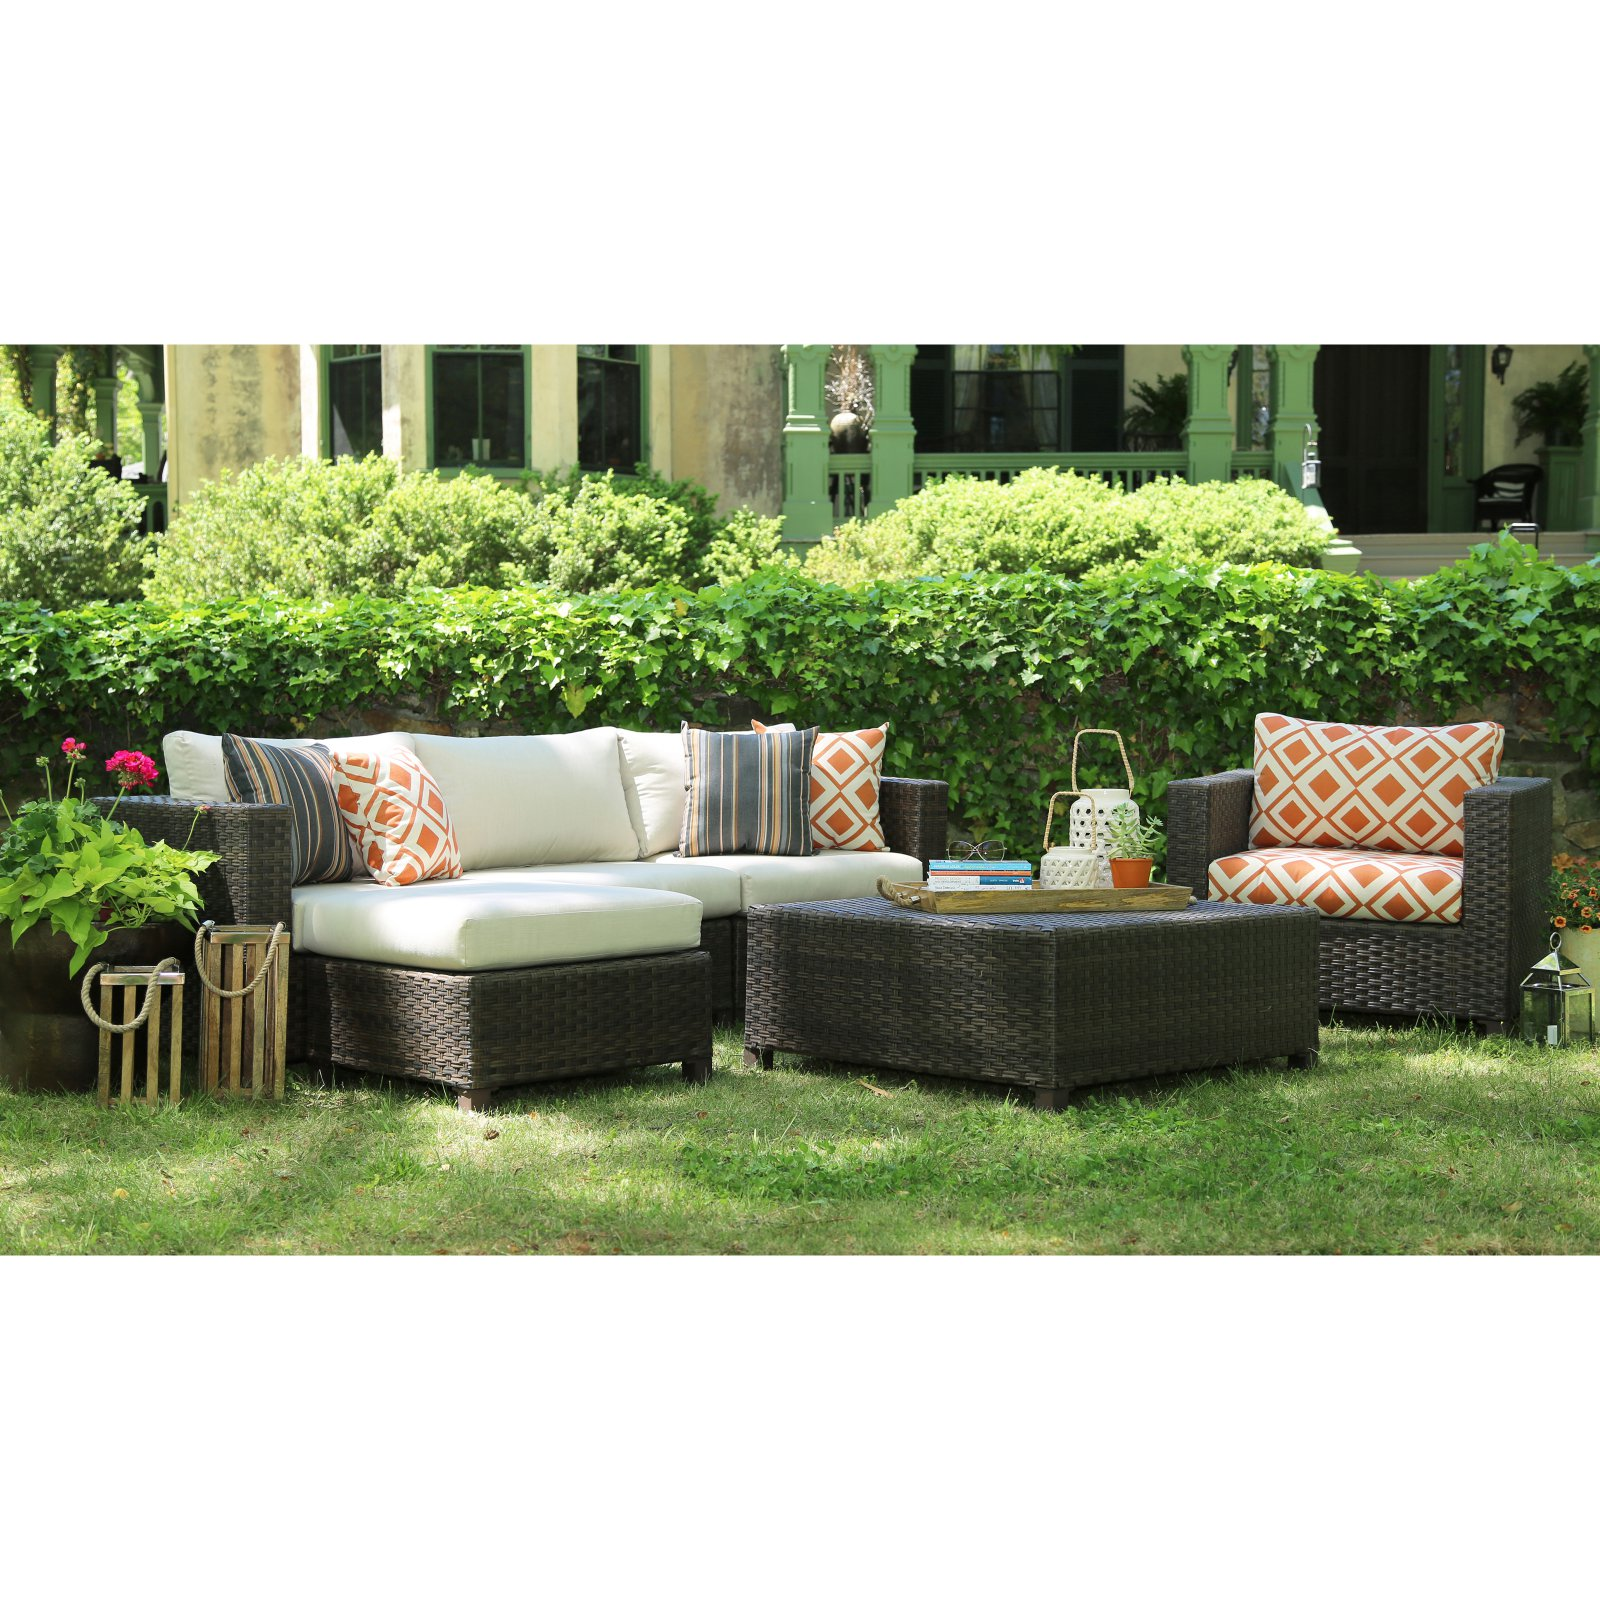 AE Outdoor Biscayne 5 Piece Deep Seating Conversation Set